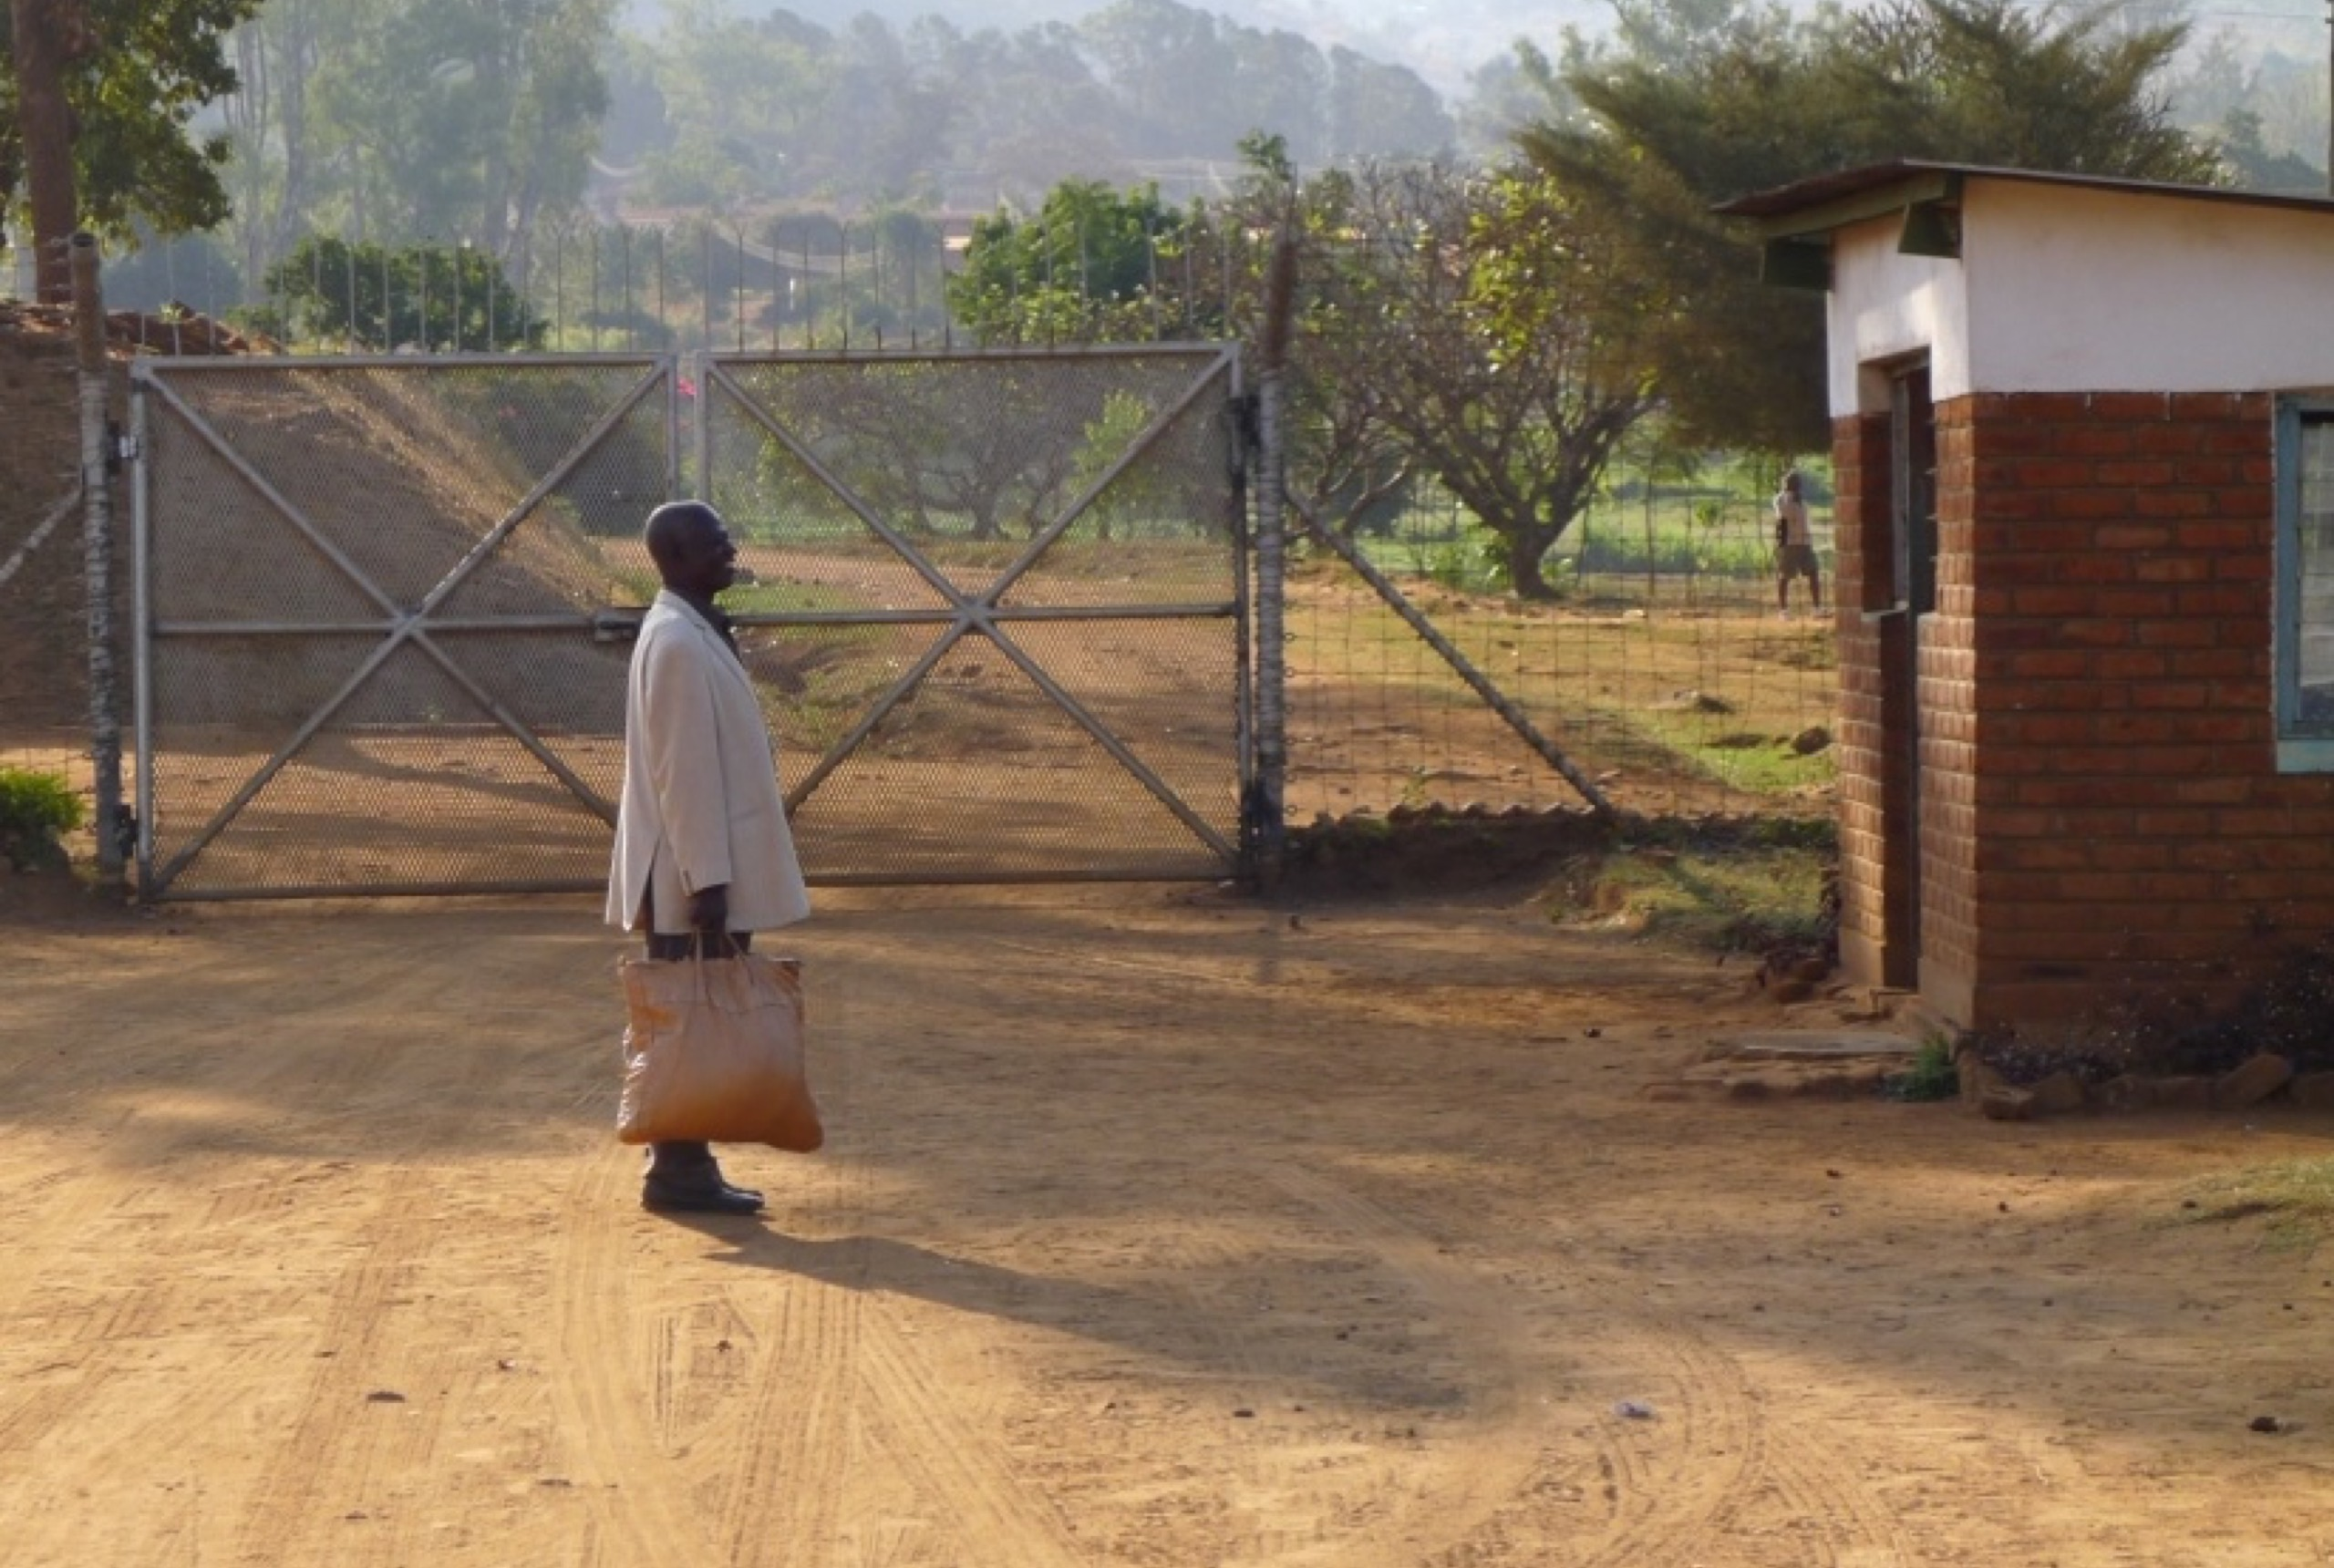 A man in a light-colored jacket is standing in front of a wire gate, holding a bag and standing sideways to the camera.